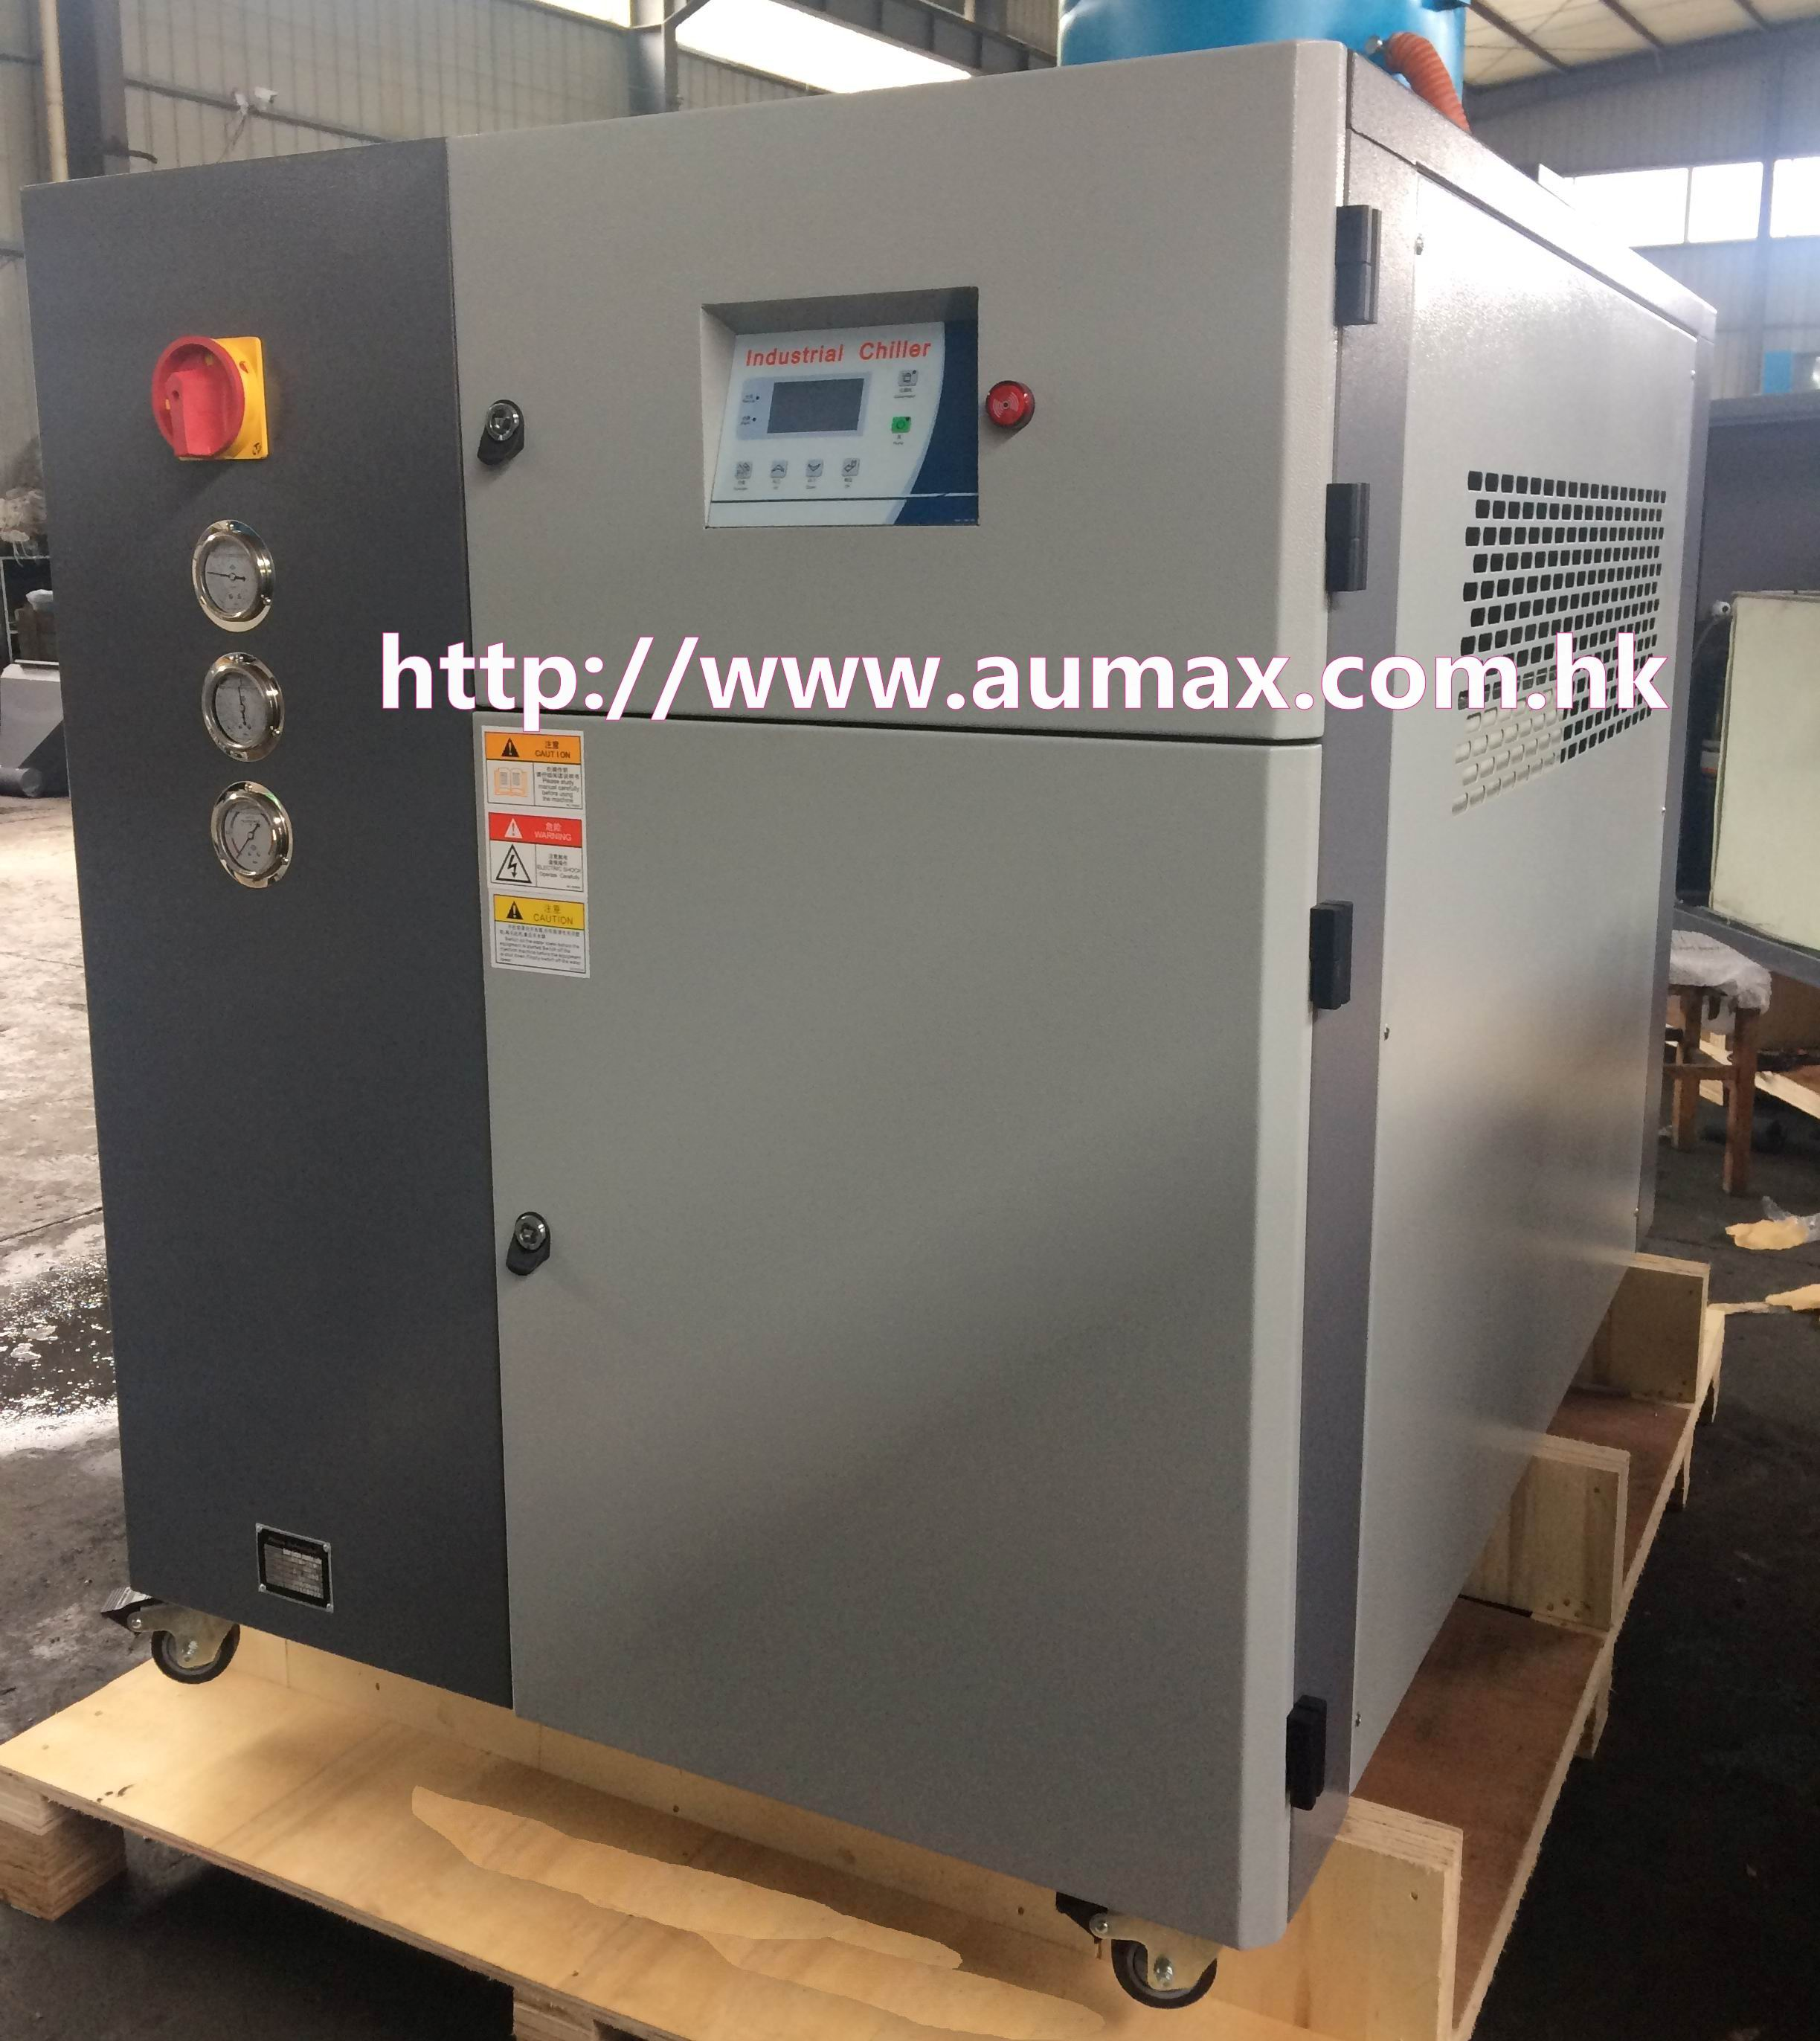 High Speed Industrial Chiller